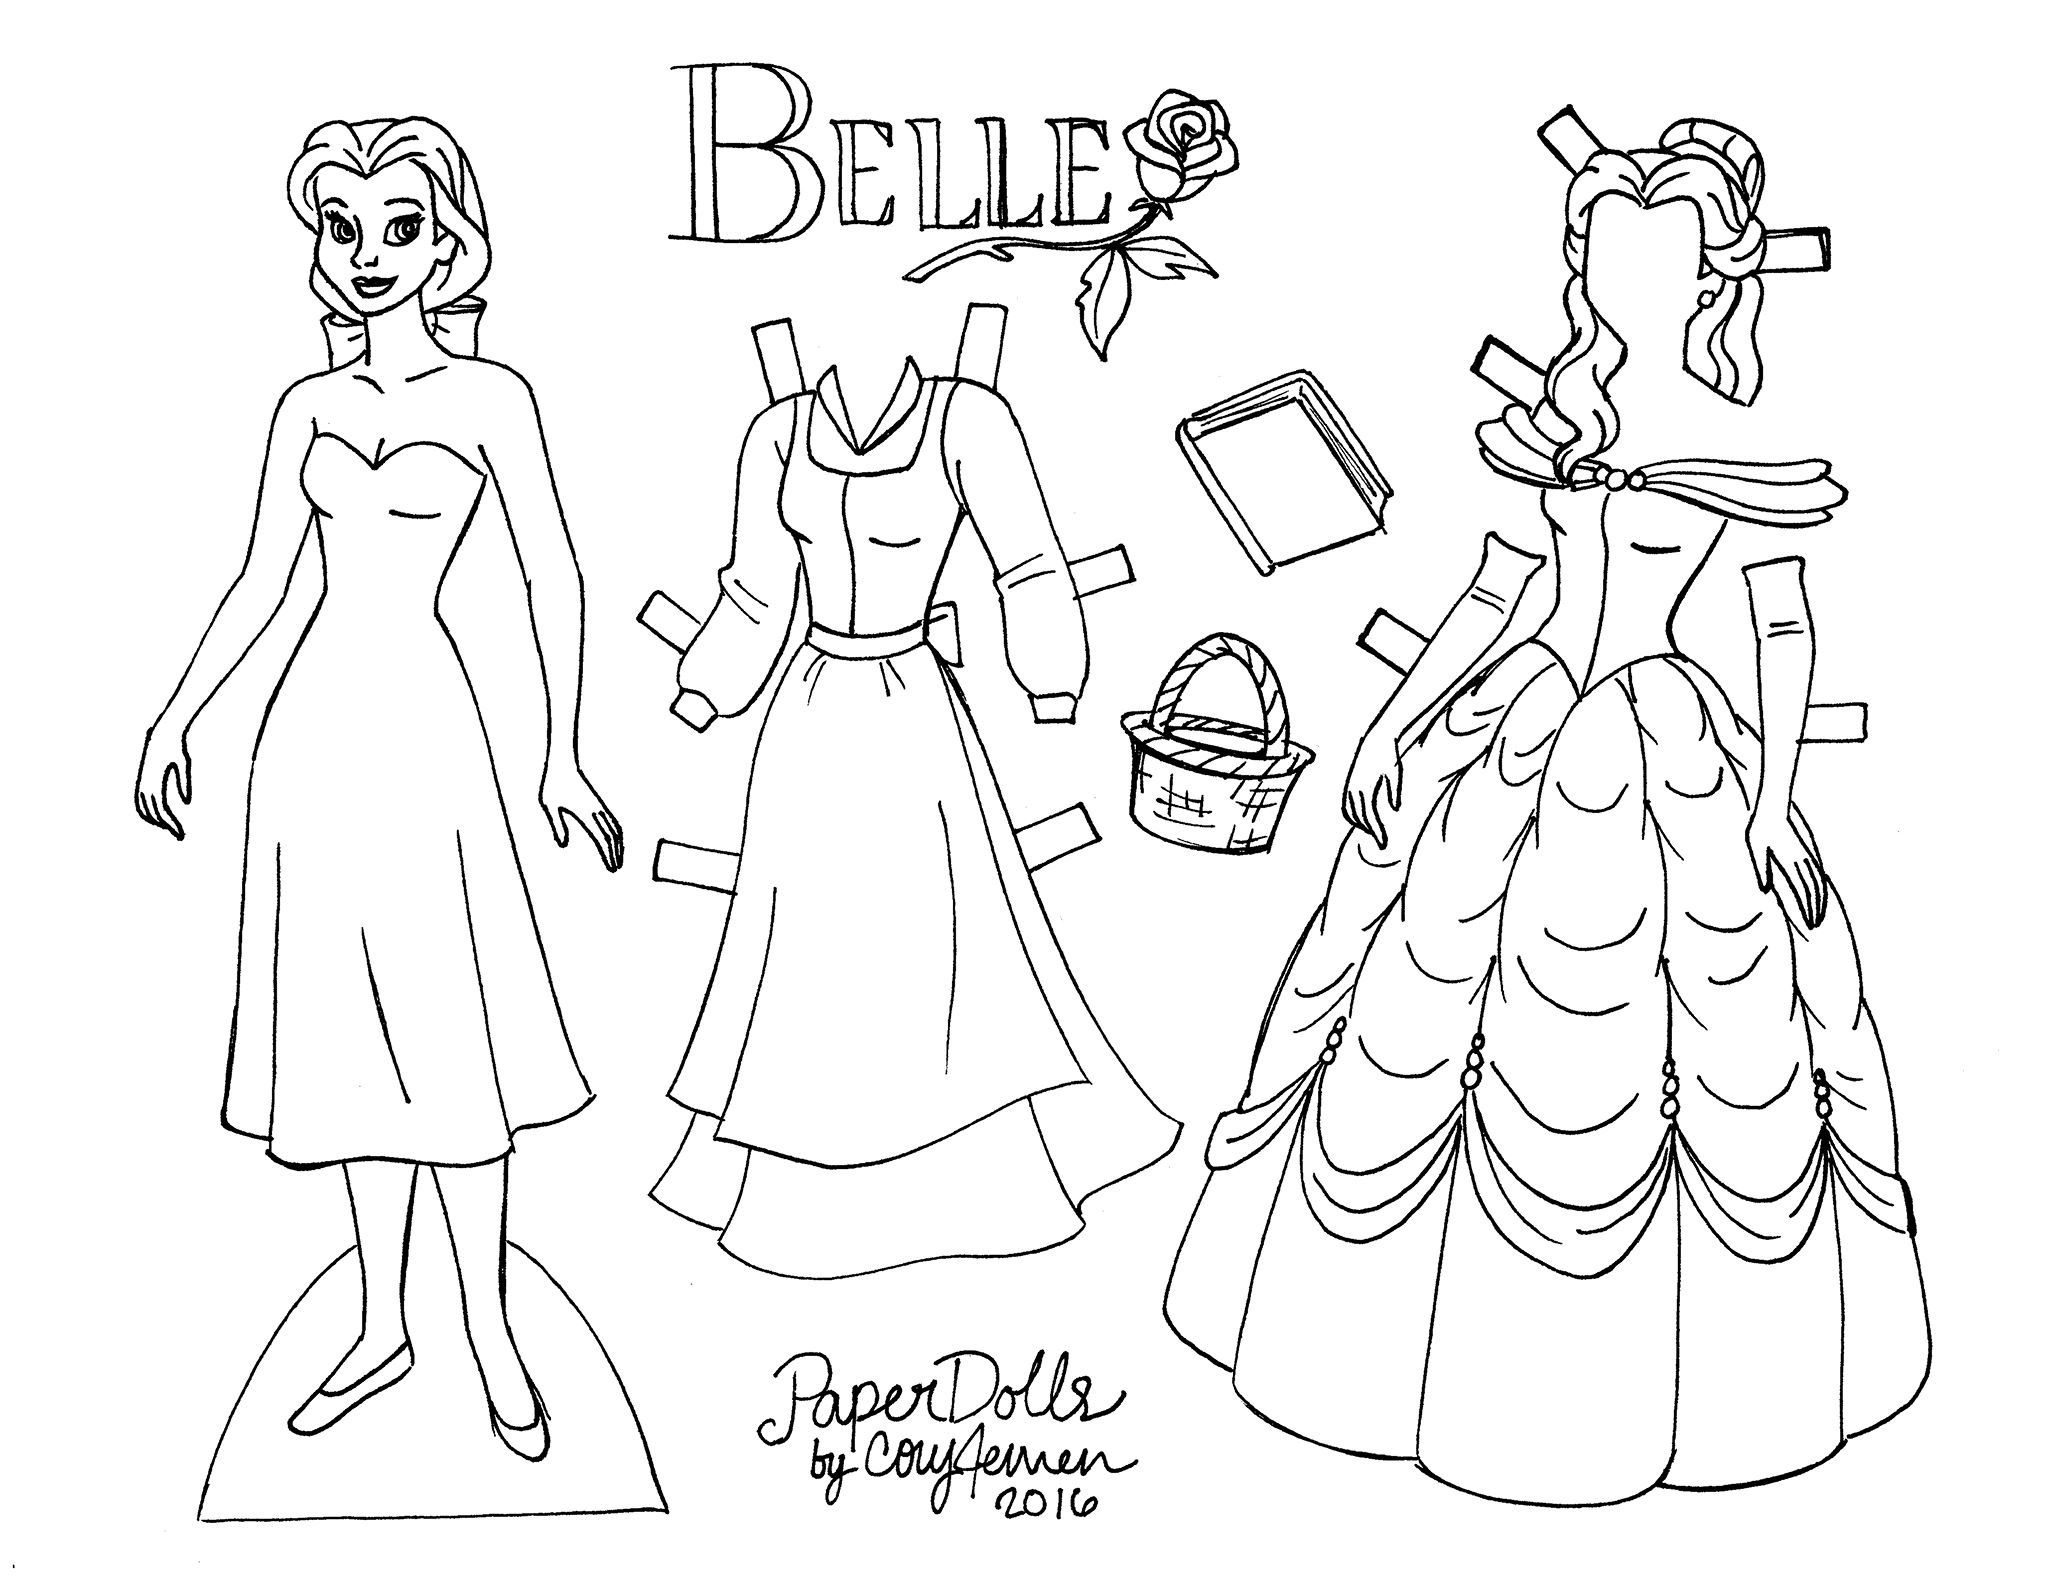 dress up dolls printable belle paper doll to color from the original animated film up printable dolls dress